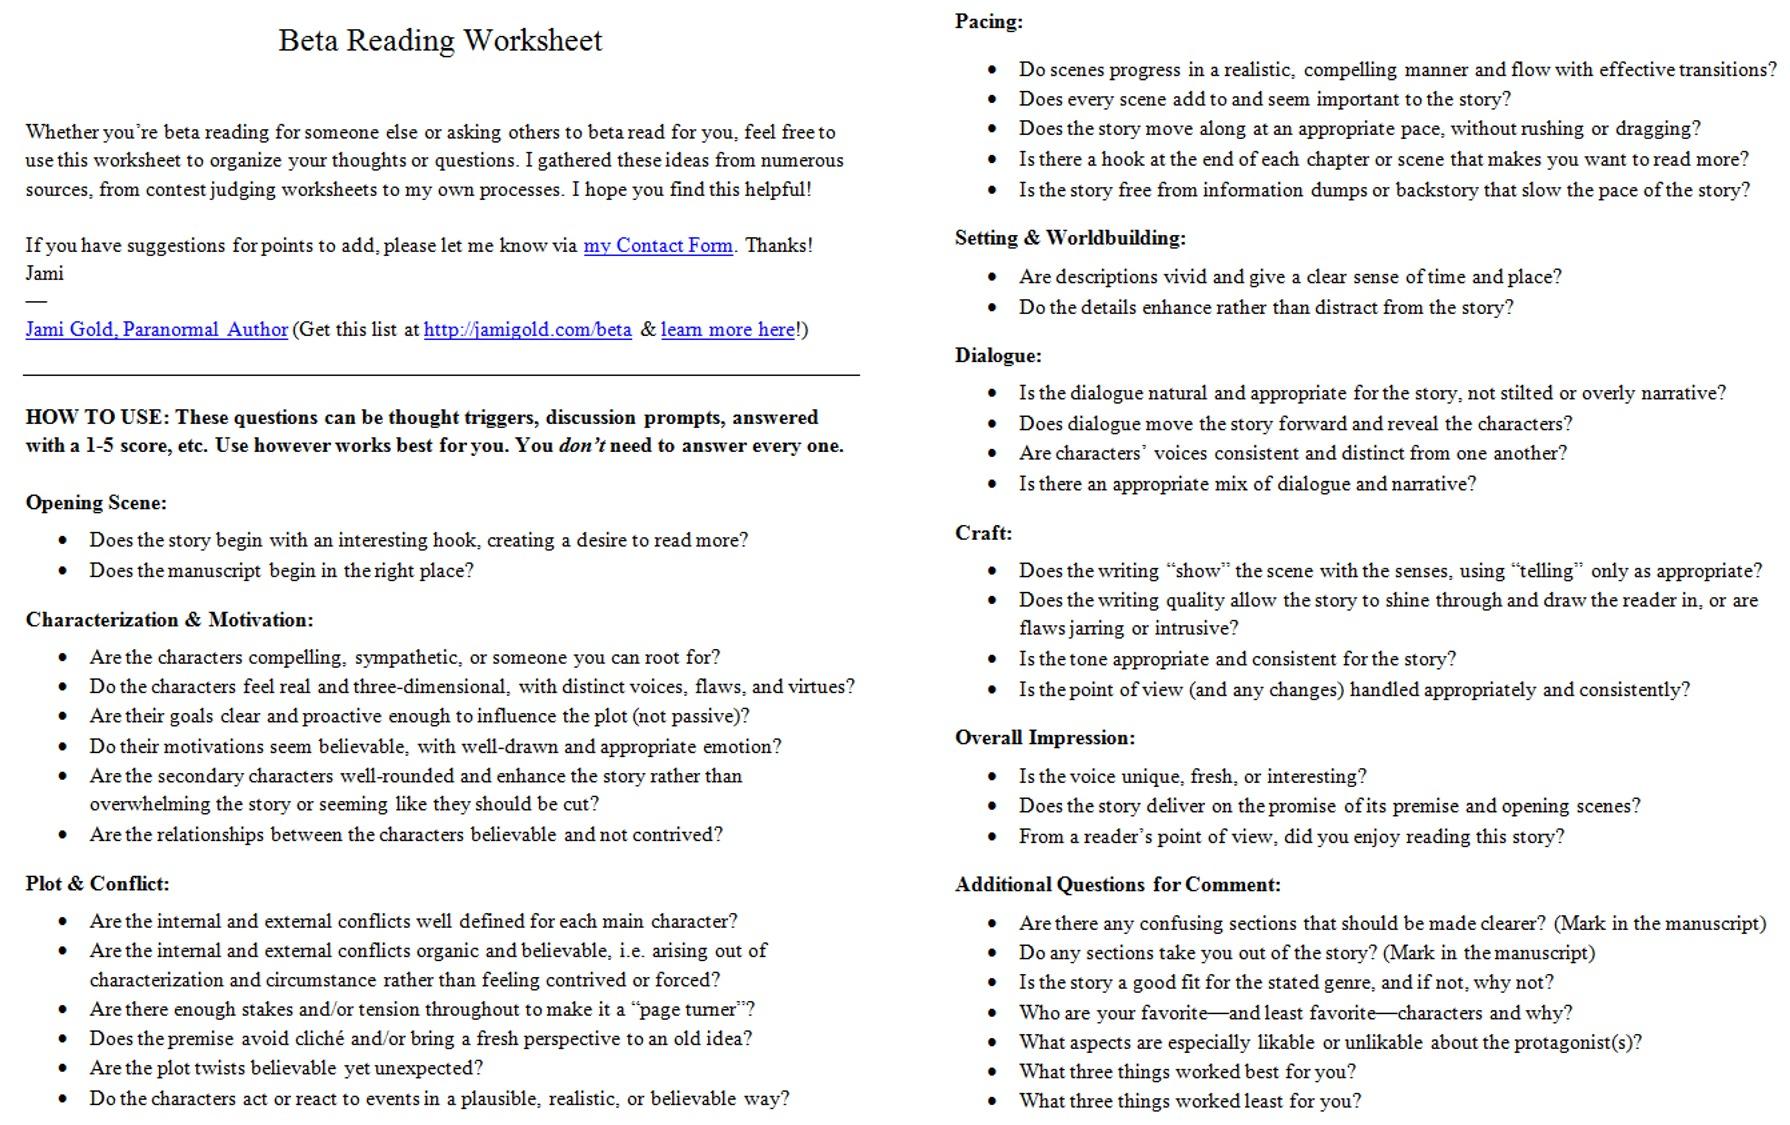 Proatmealus  Unusual Worksheets For Writers  Jami Gold Paranormal Author With Outstanding Screen Shot Of The Twopage Beta Reading Worksheet With Divine French Verbs Worksheet Also Rhyming Words Worksheet Ks In Addition Rounding Hundreds Worksheet And Perimeter Worksheets Year  As Well As Beginners German Worksheets Additionally Free  Grade Math Worksheets From Jamigoldcom With Proatmealus  Outstanding Worksheets For Writers  Jami Gold Paranormal Author With Divine Screen Shot Of The Twopage Beta Reading Worksheet And Unusual French Verbs Worksheet Also Rhyming Words Worksheet Ks In Addition Rounding Hundreds Worksheet From Jamigoldcom